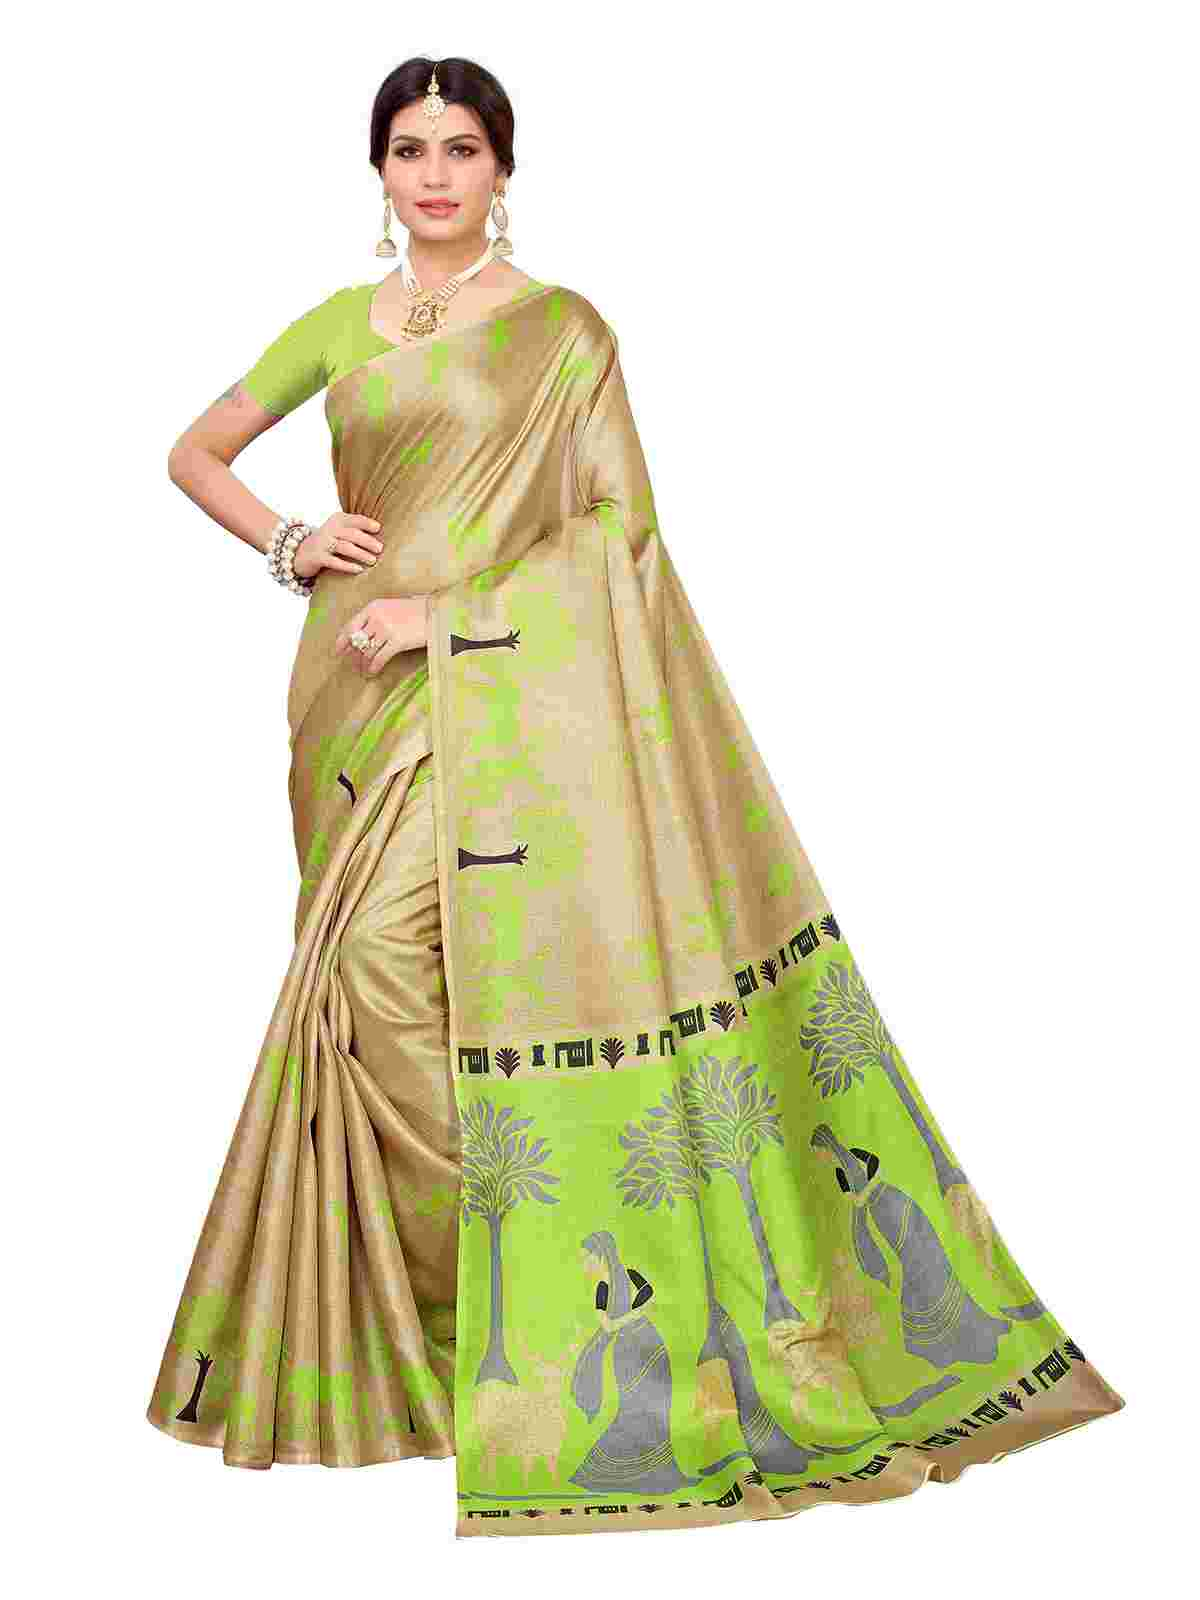 Imposing Beige-Green Colored Casual Printed Khaadi Silk Saree With Unstitched Blouse